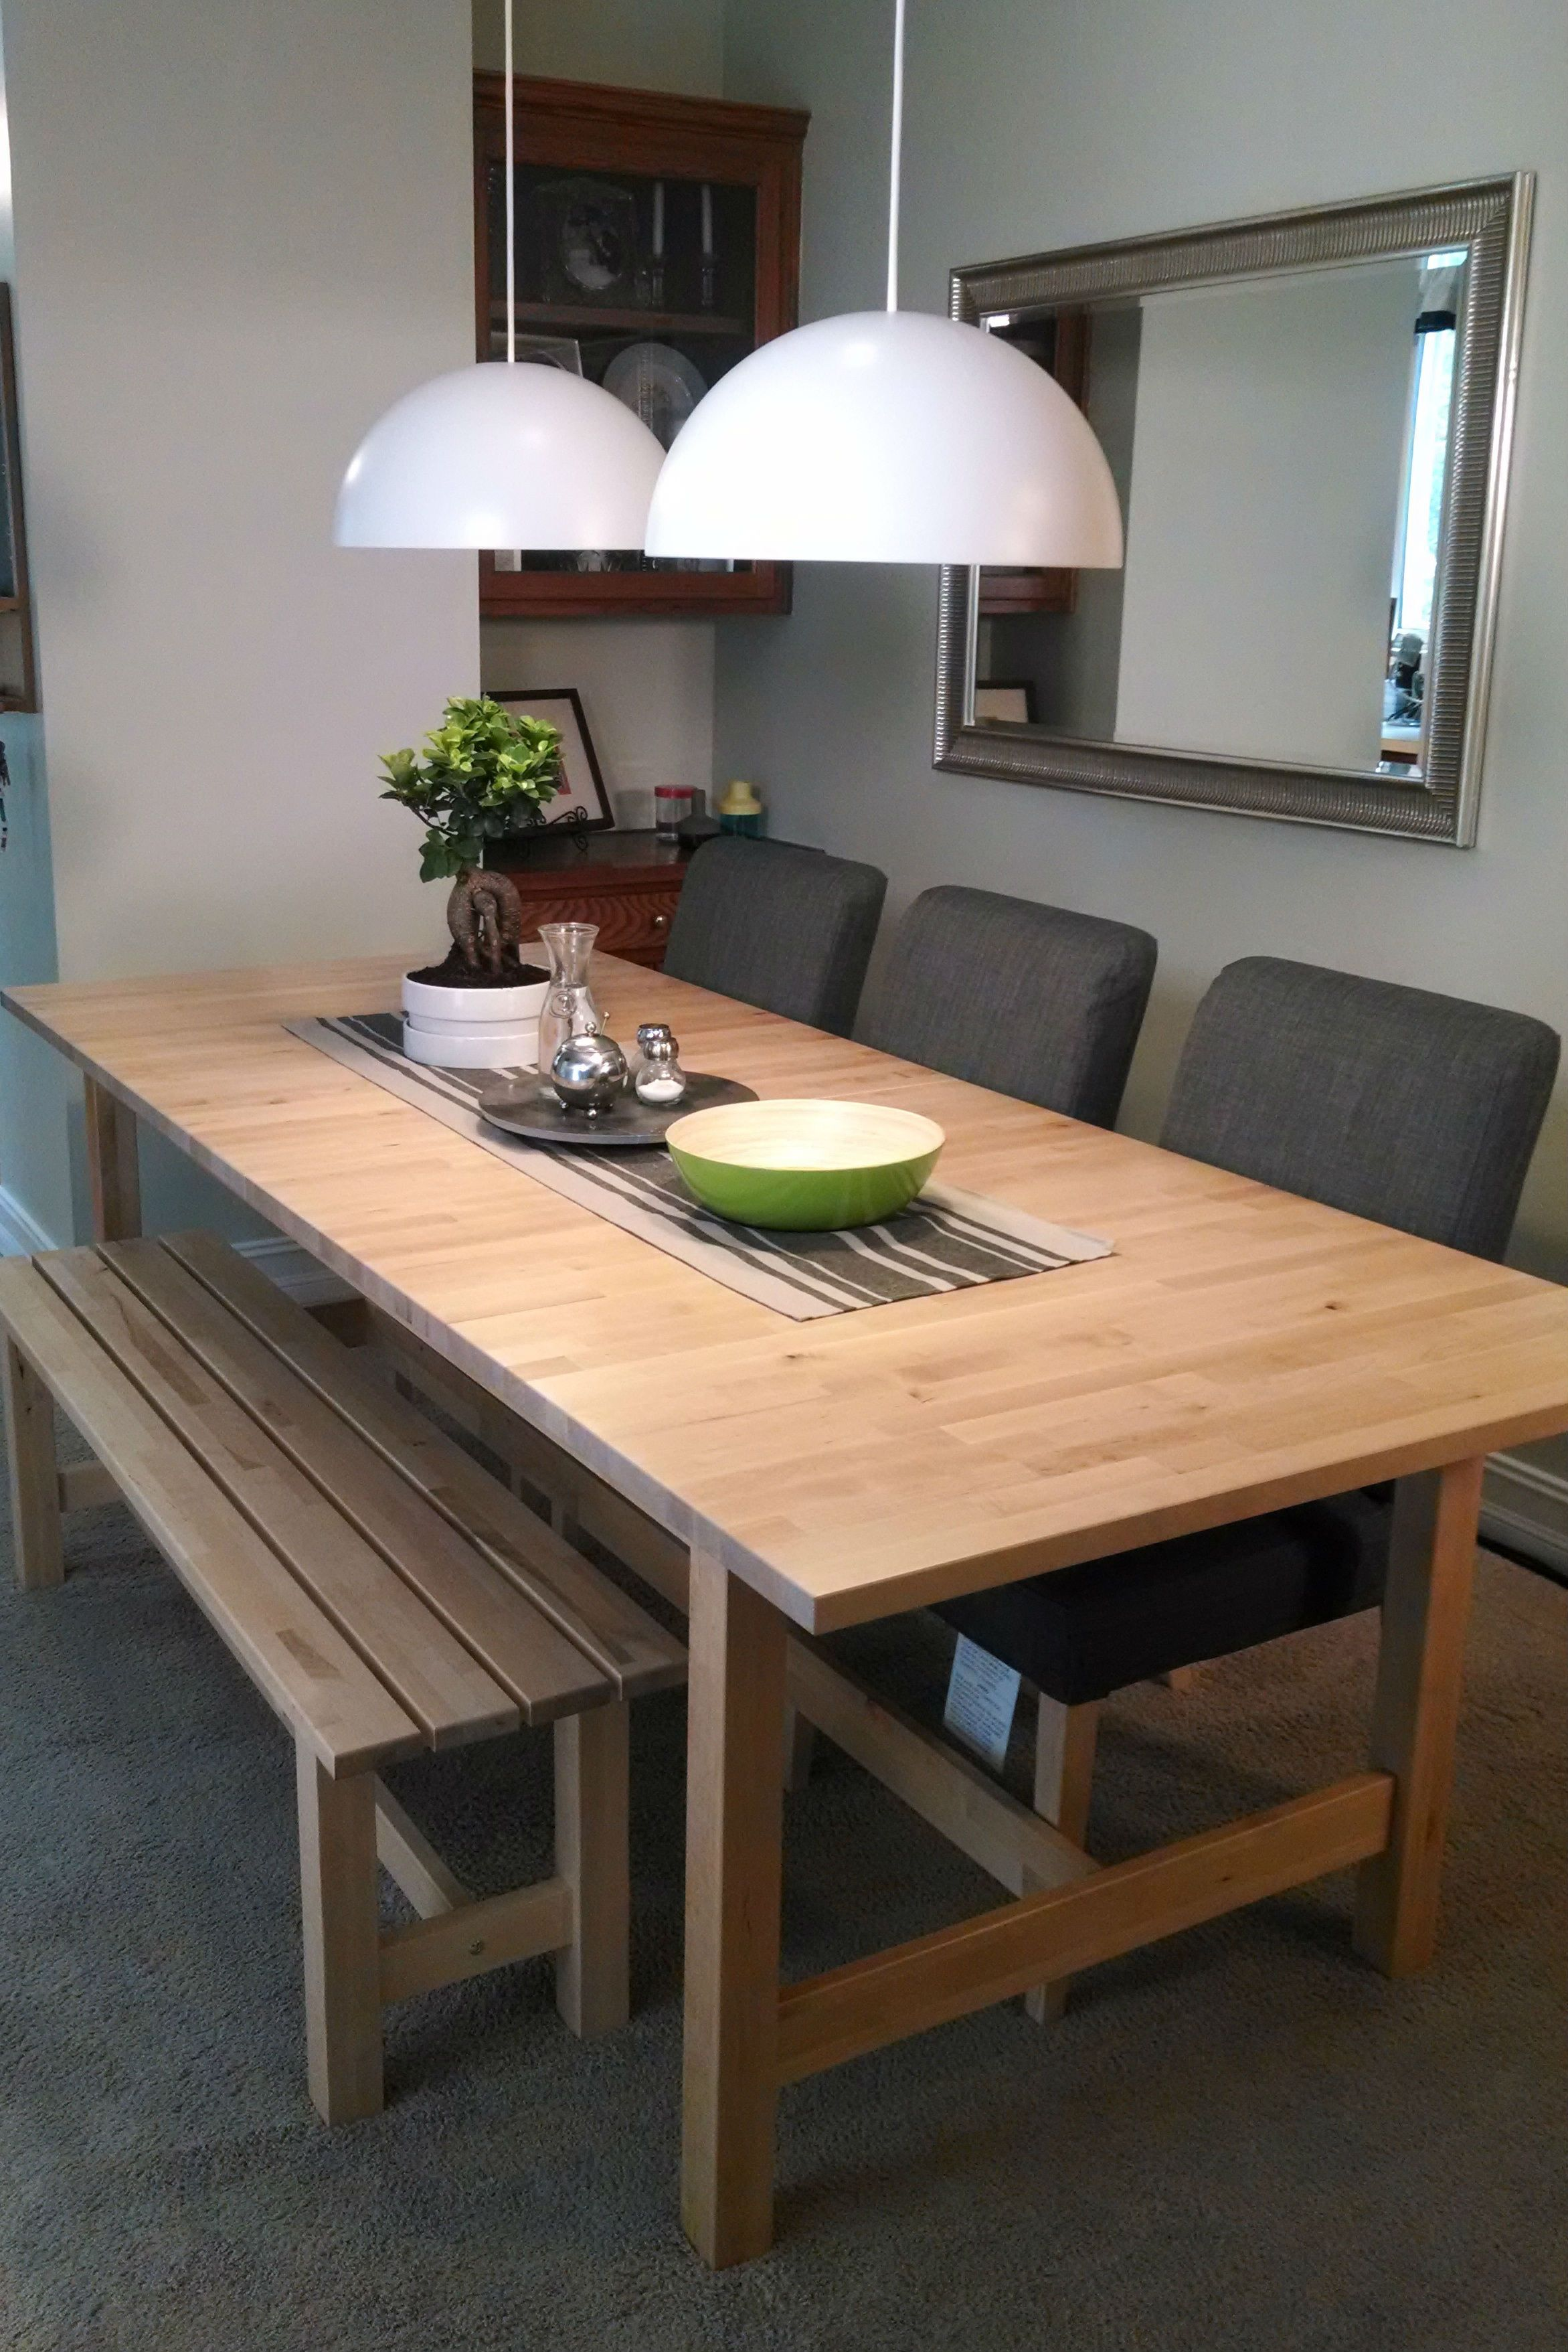 The Solid Birch Construction Of The Norden Dining Table Is A Durable